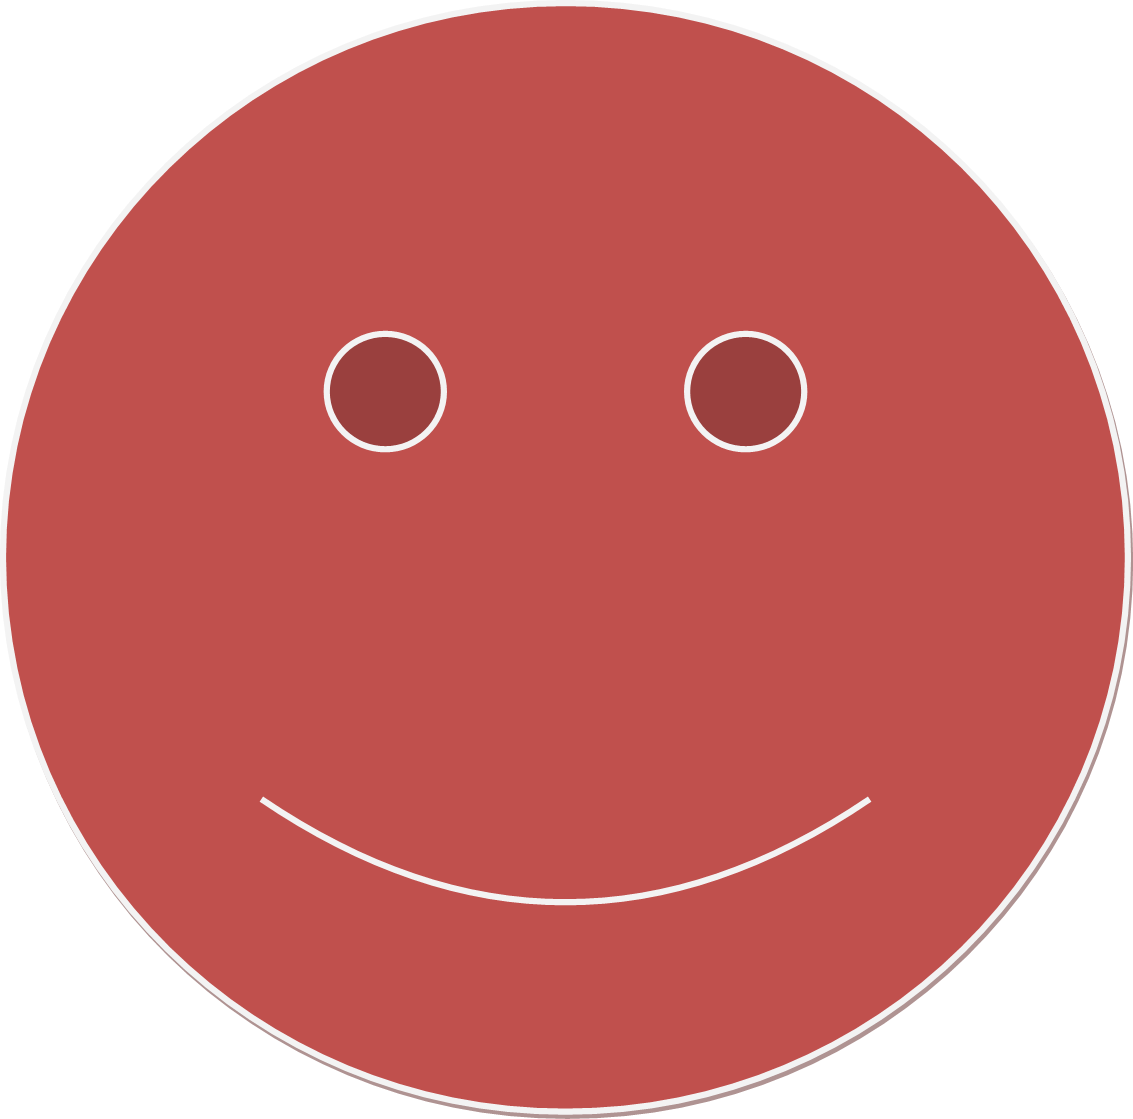 Red smiley face png. File wikimedia commons filered